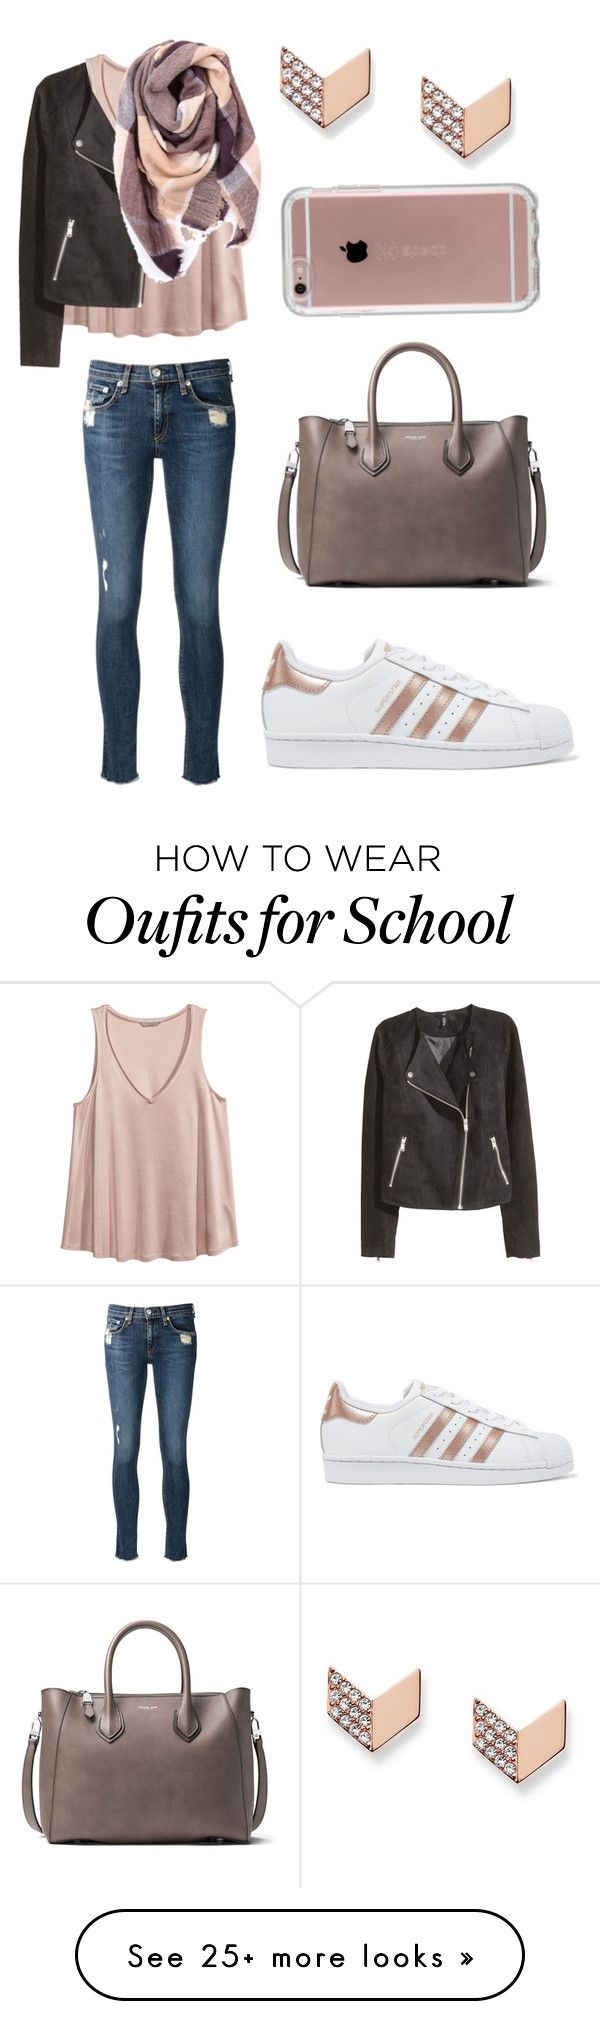 """Long school day"" by sarahfohlen on Polyvore featuring FOSSIL, adidas Originals, rag & bone/JEAN, Michael Kors, H&M, Everest, Speck, Winter and 2k17"